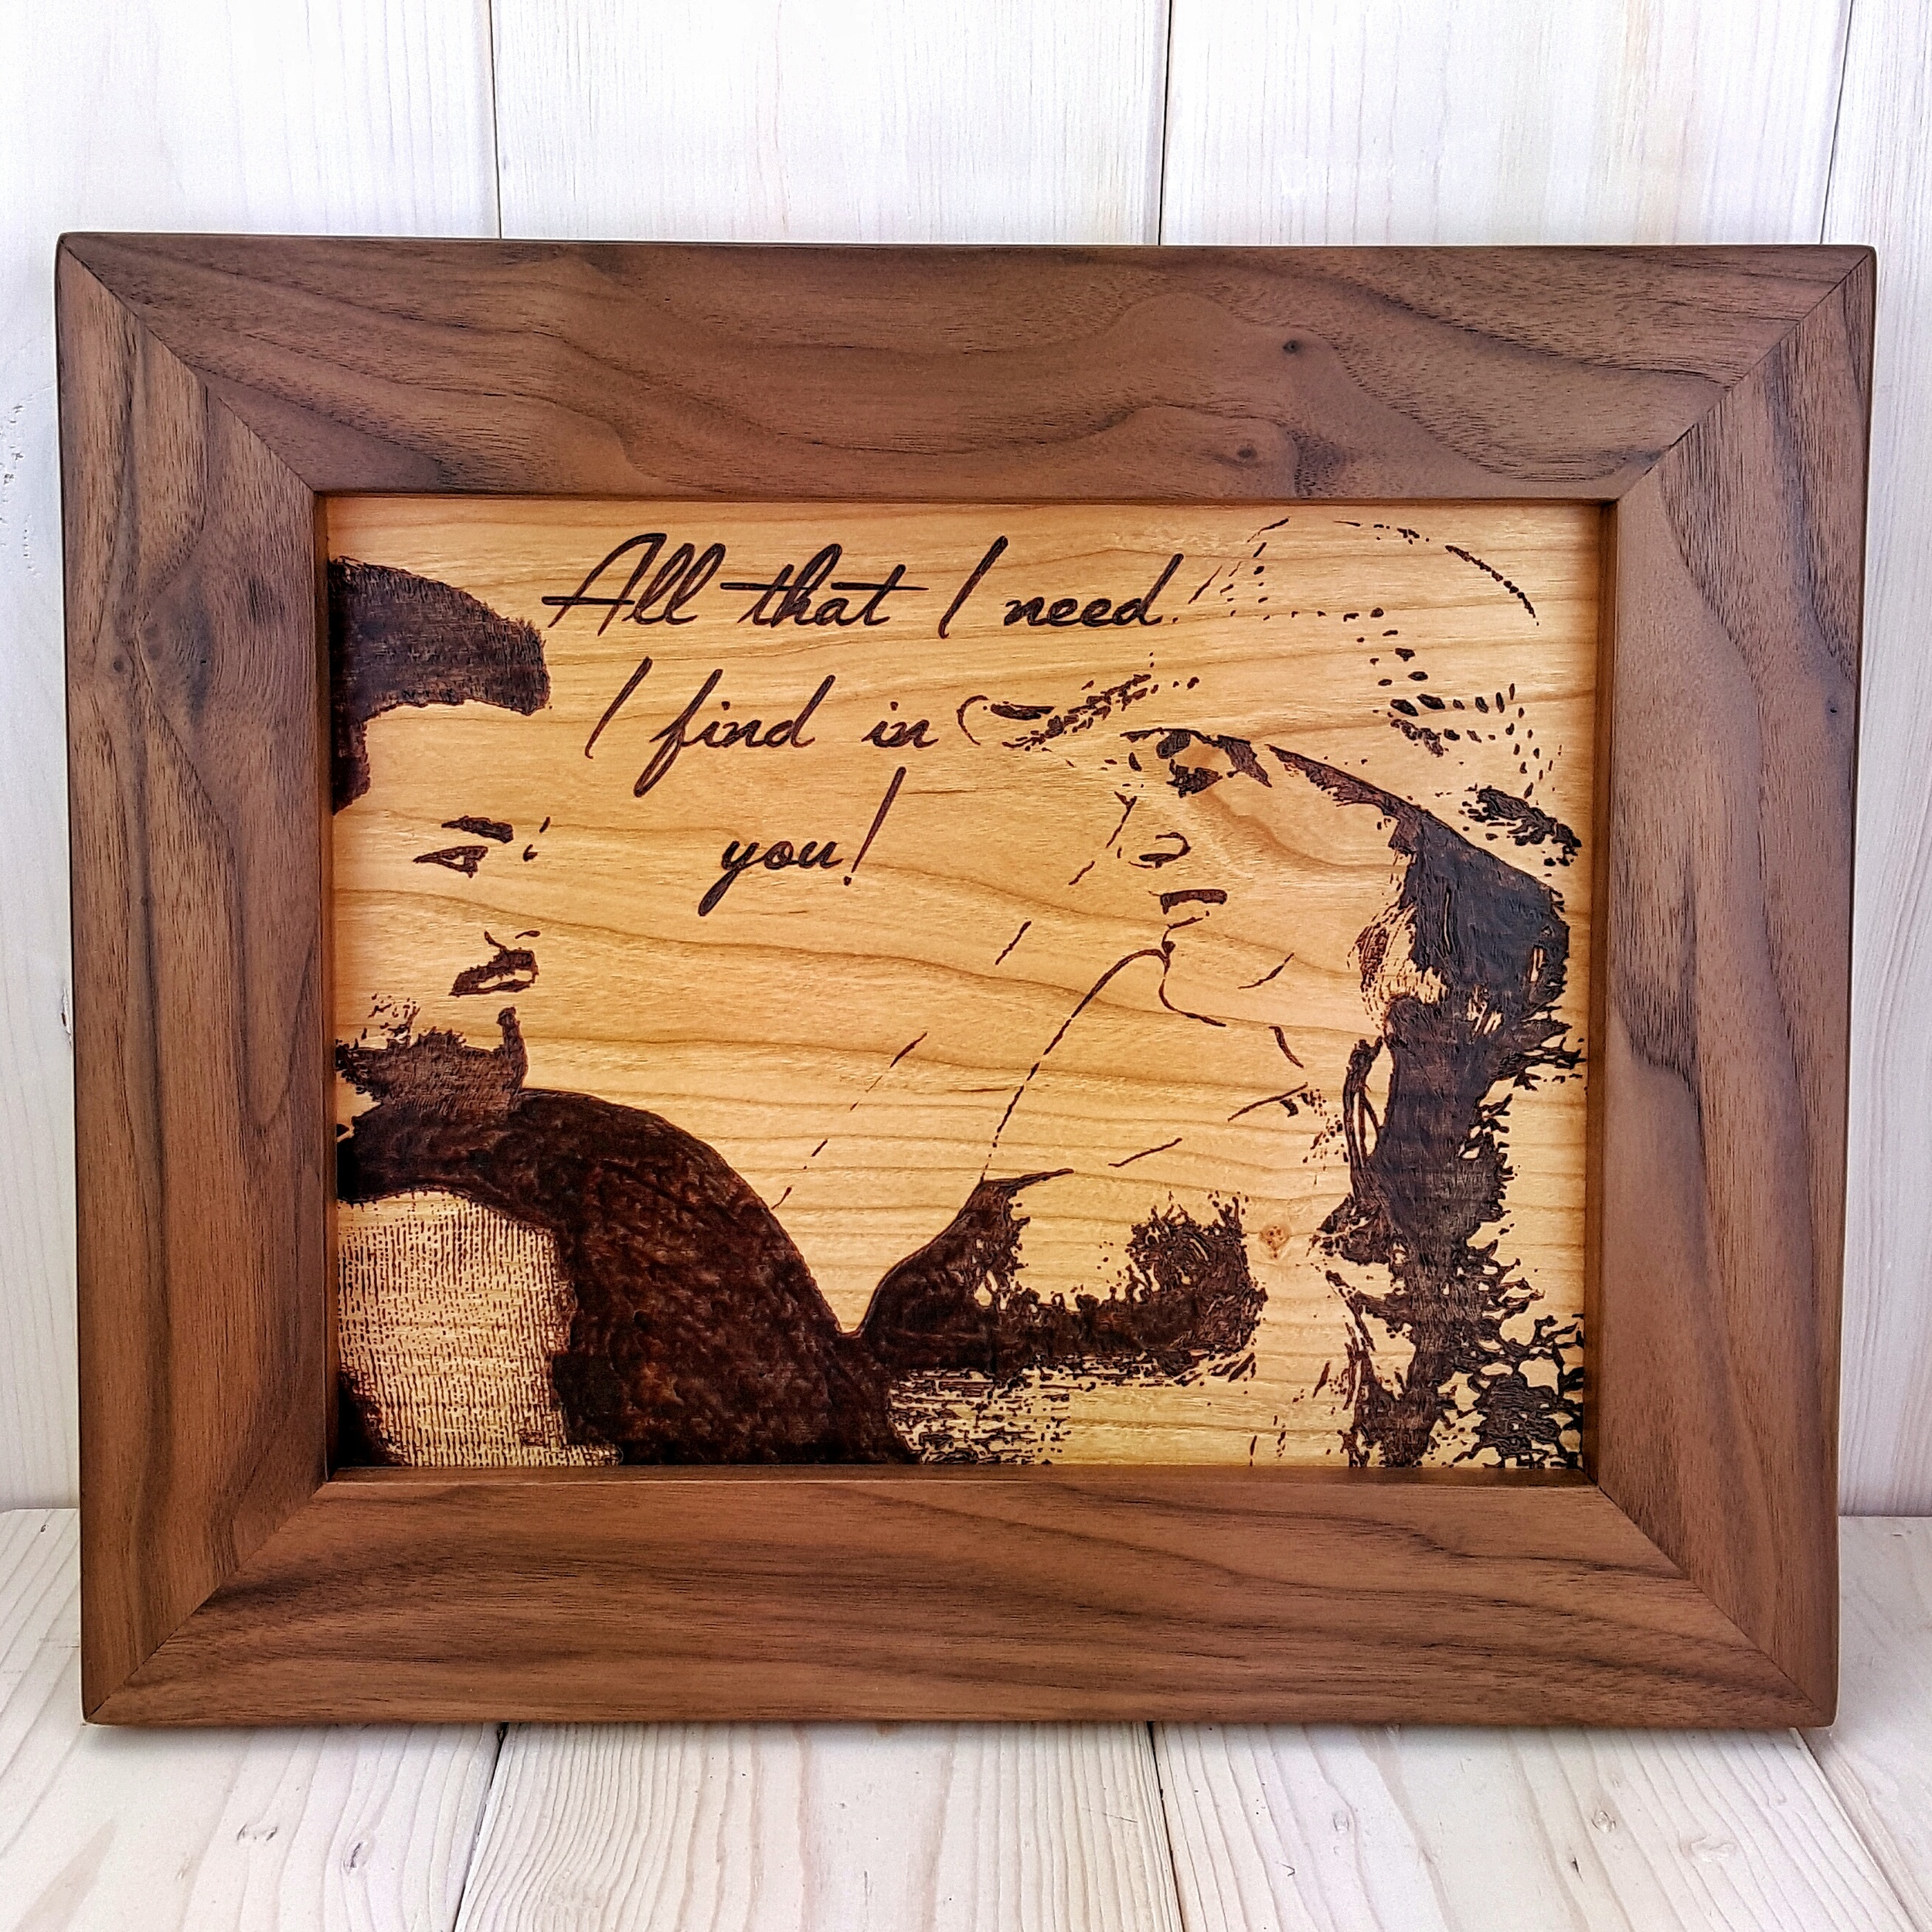 Custom Woodburned Photo with Walnut Frame